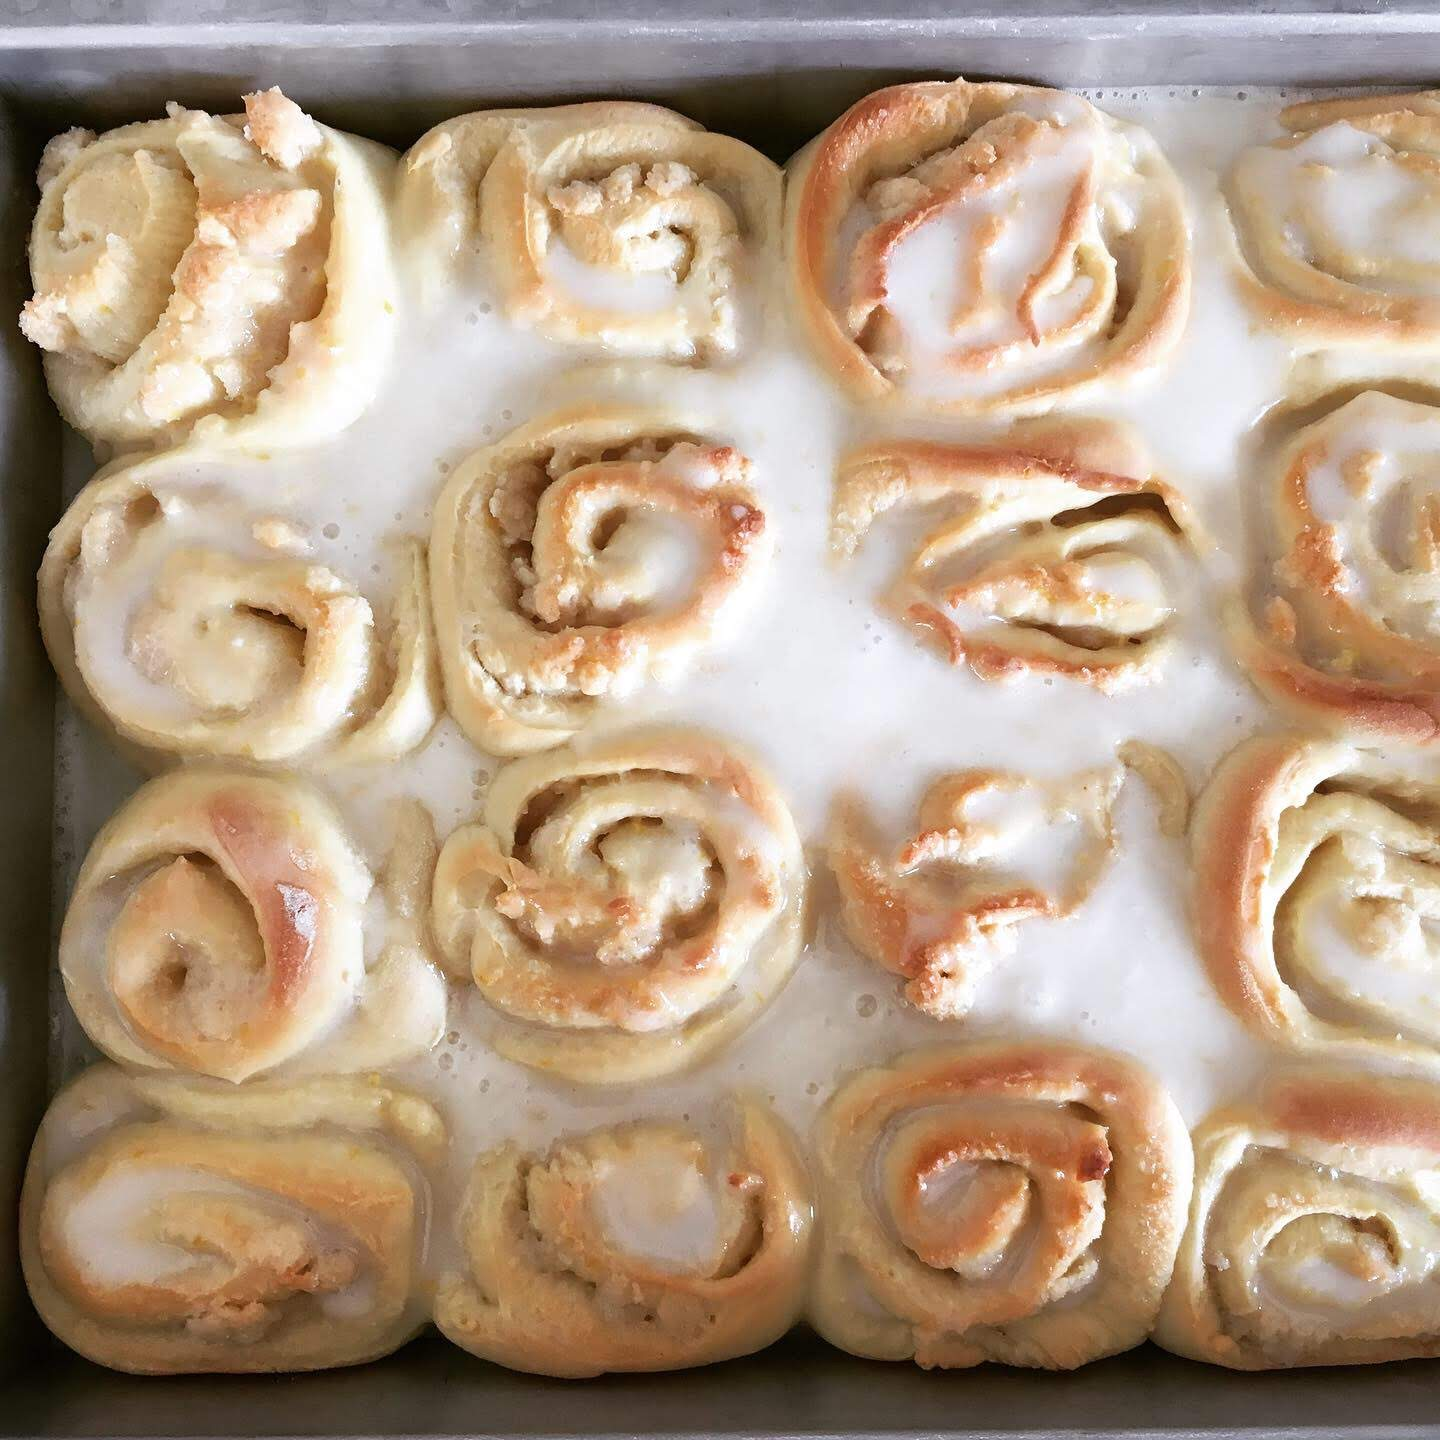 Glazed lemon-almond rolls